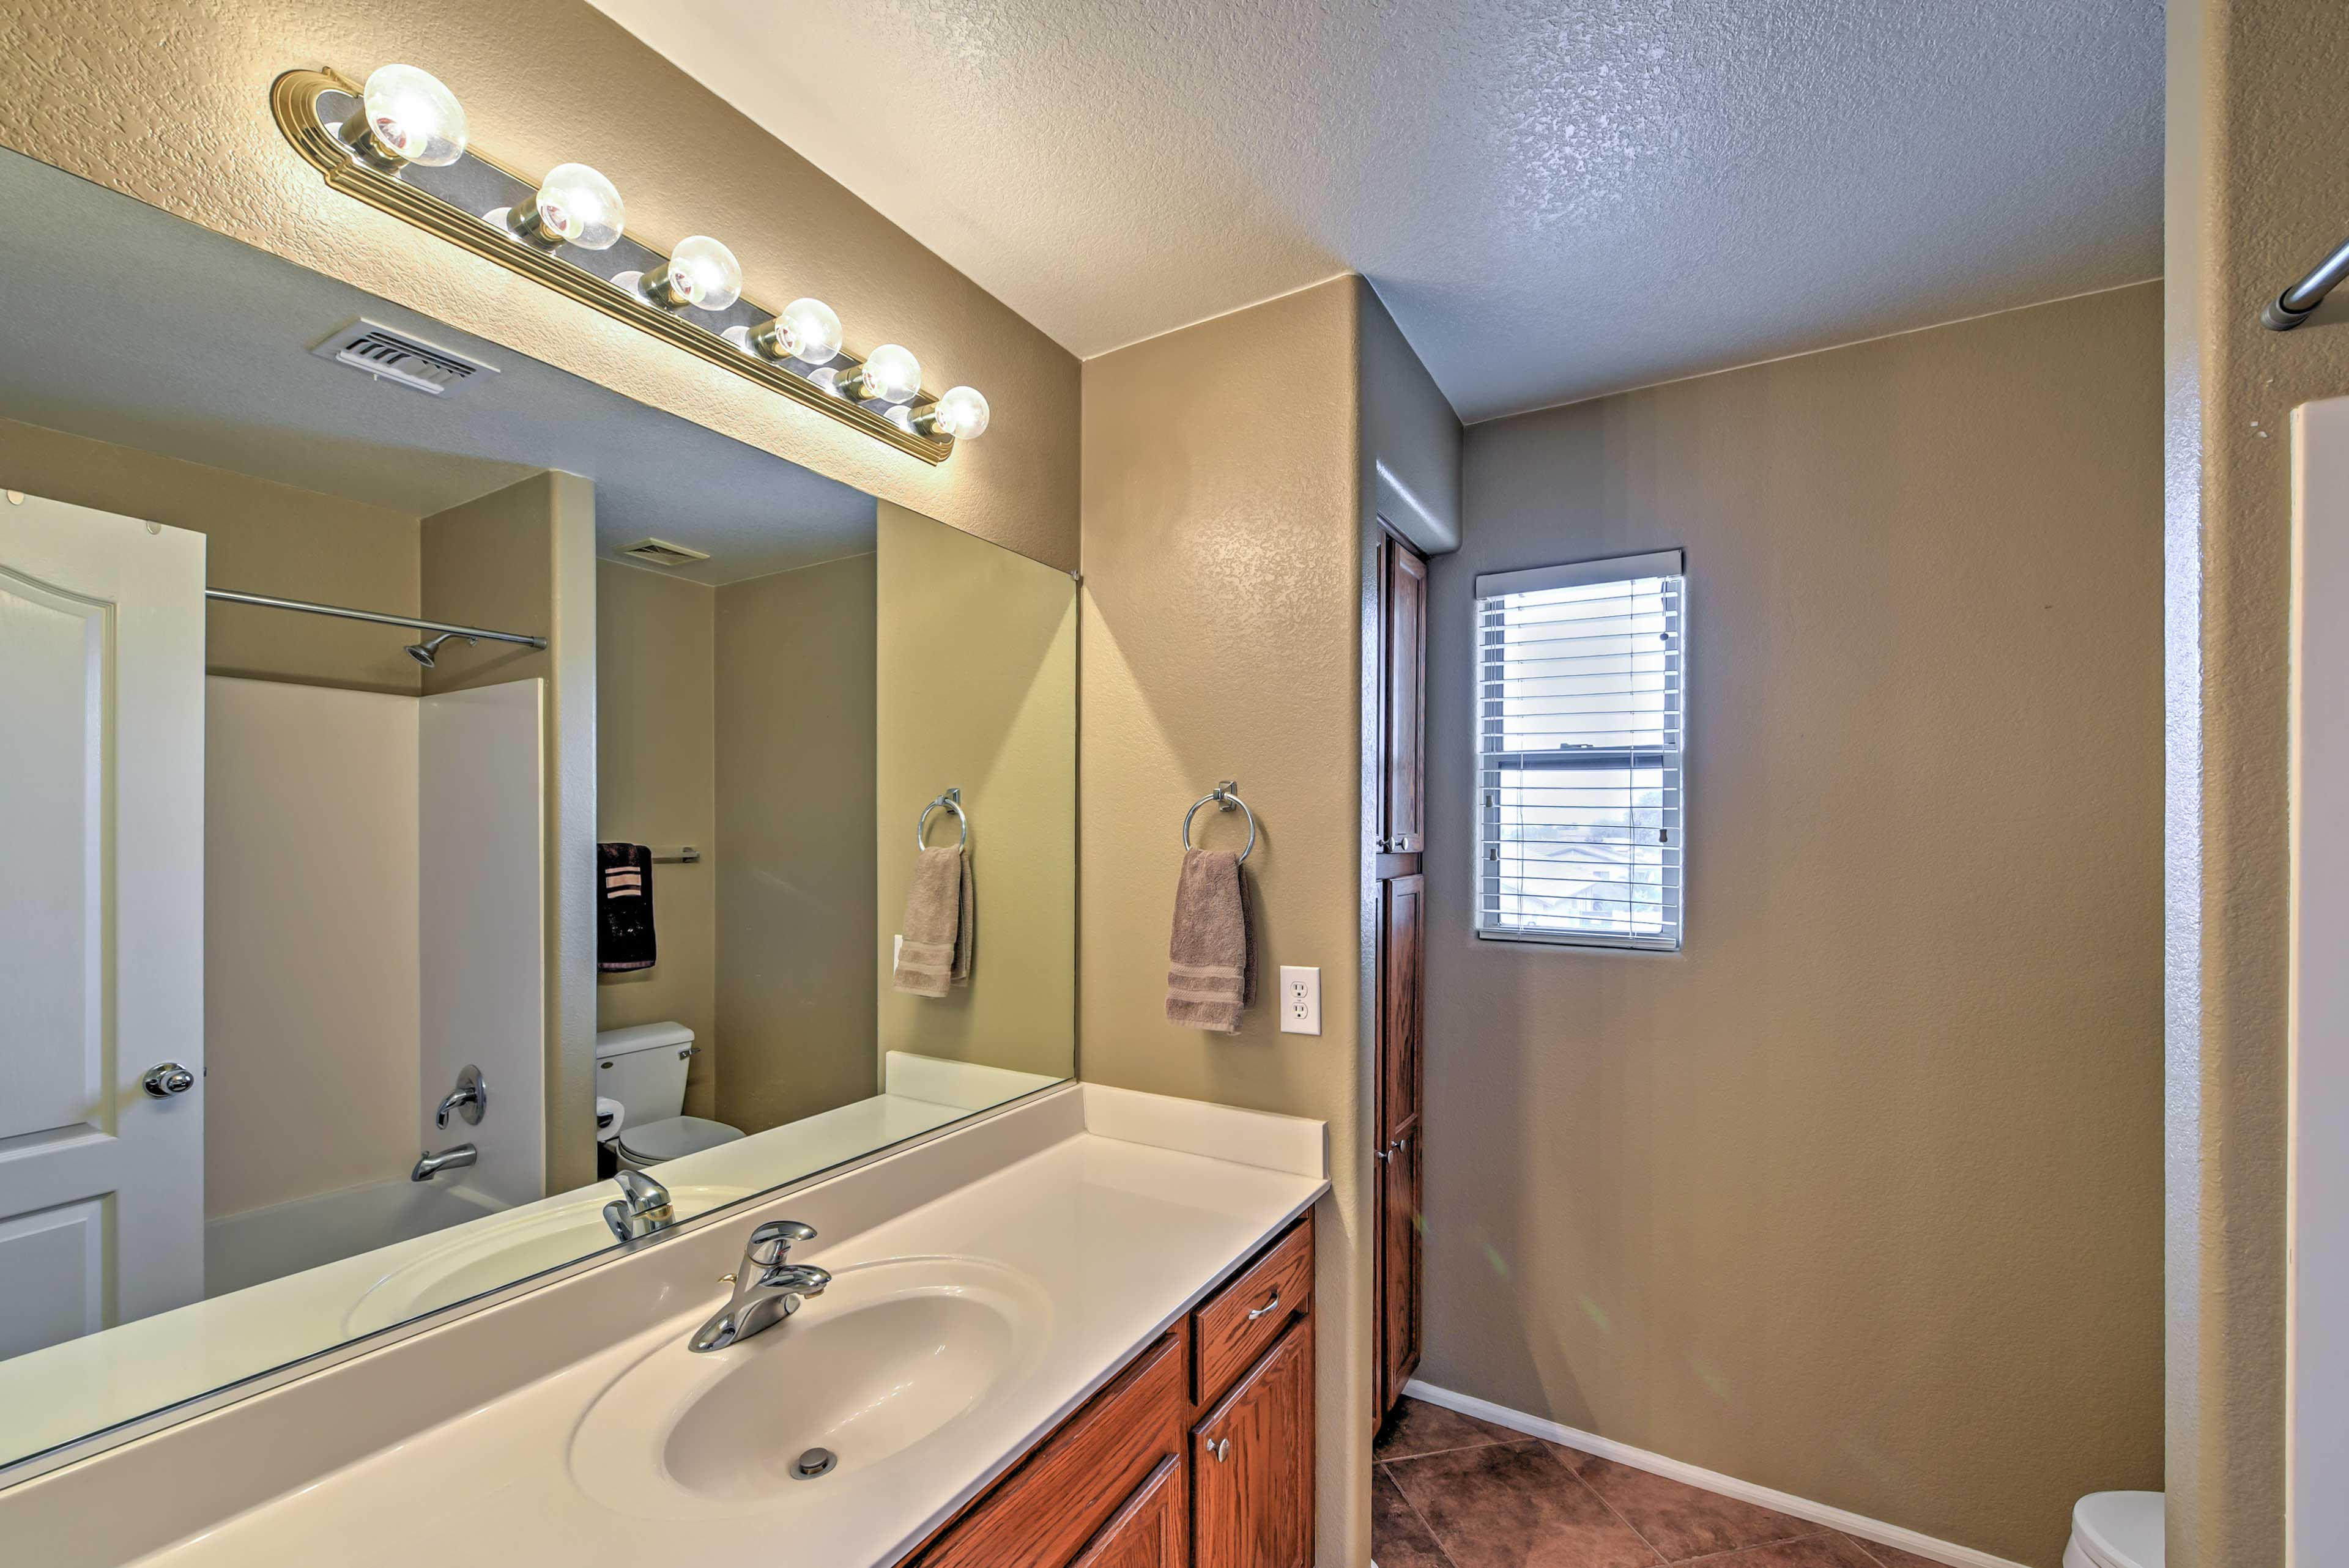 The home offers 2.5 baths.